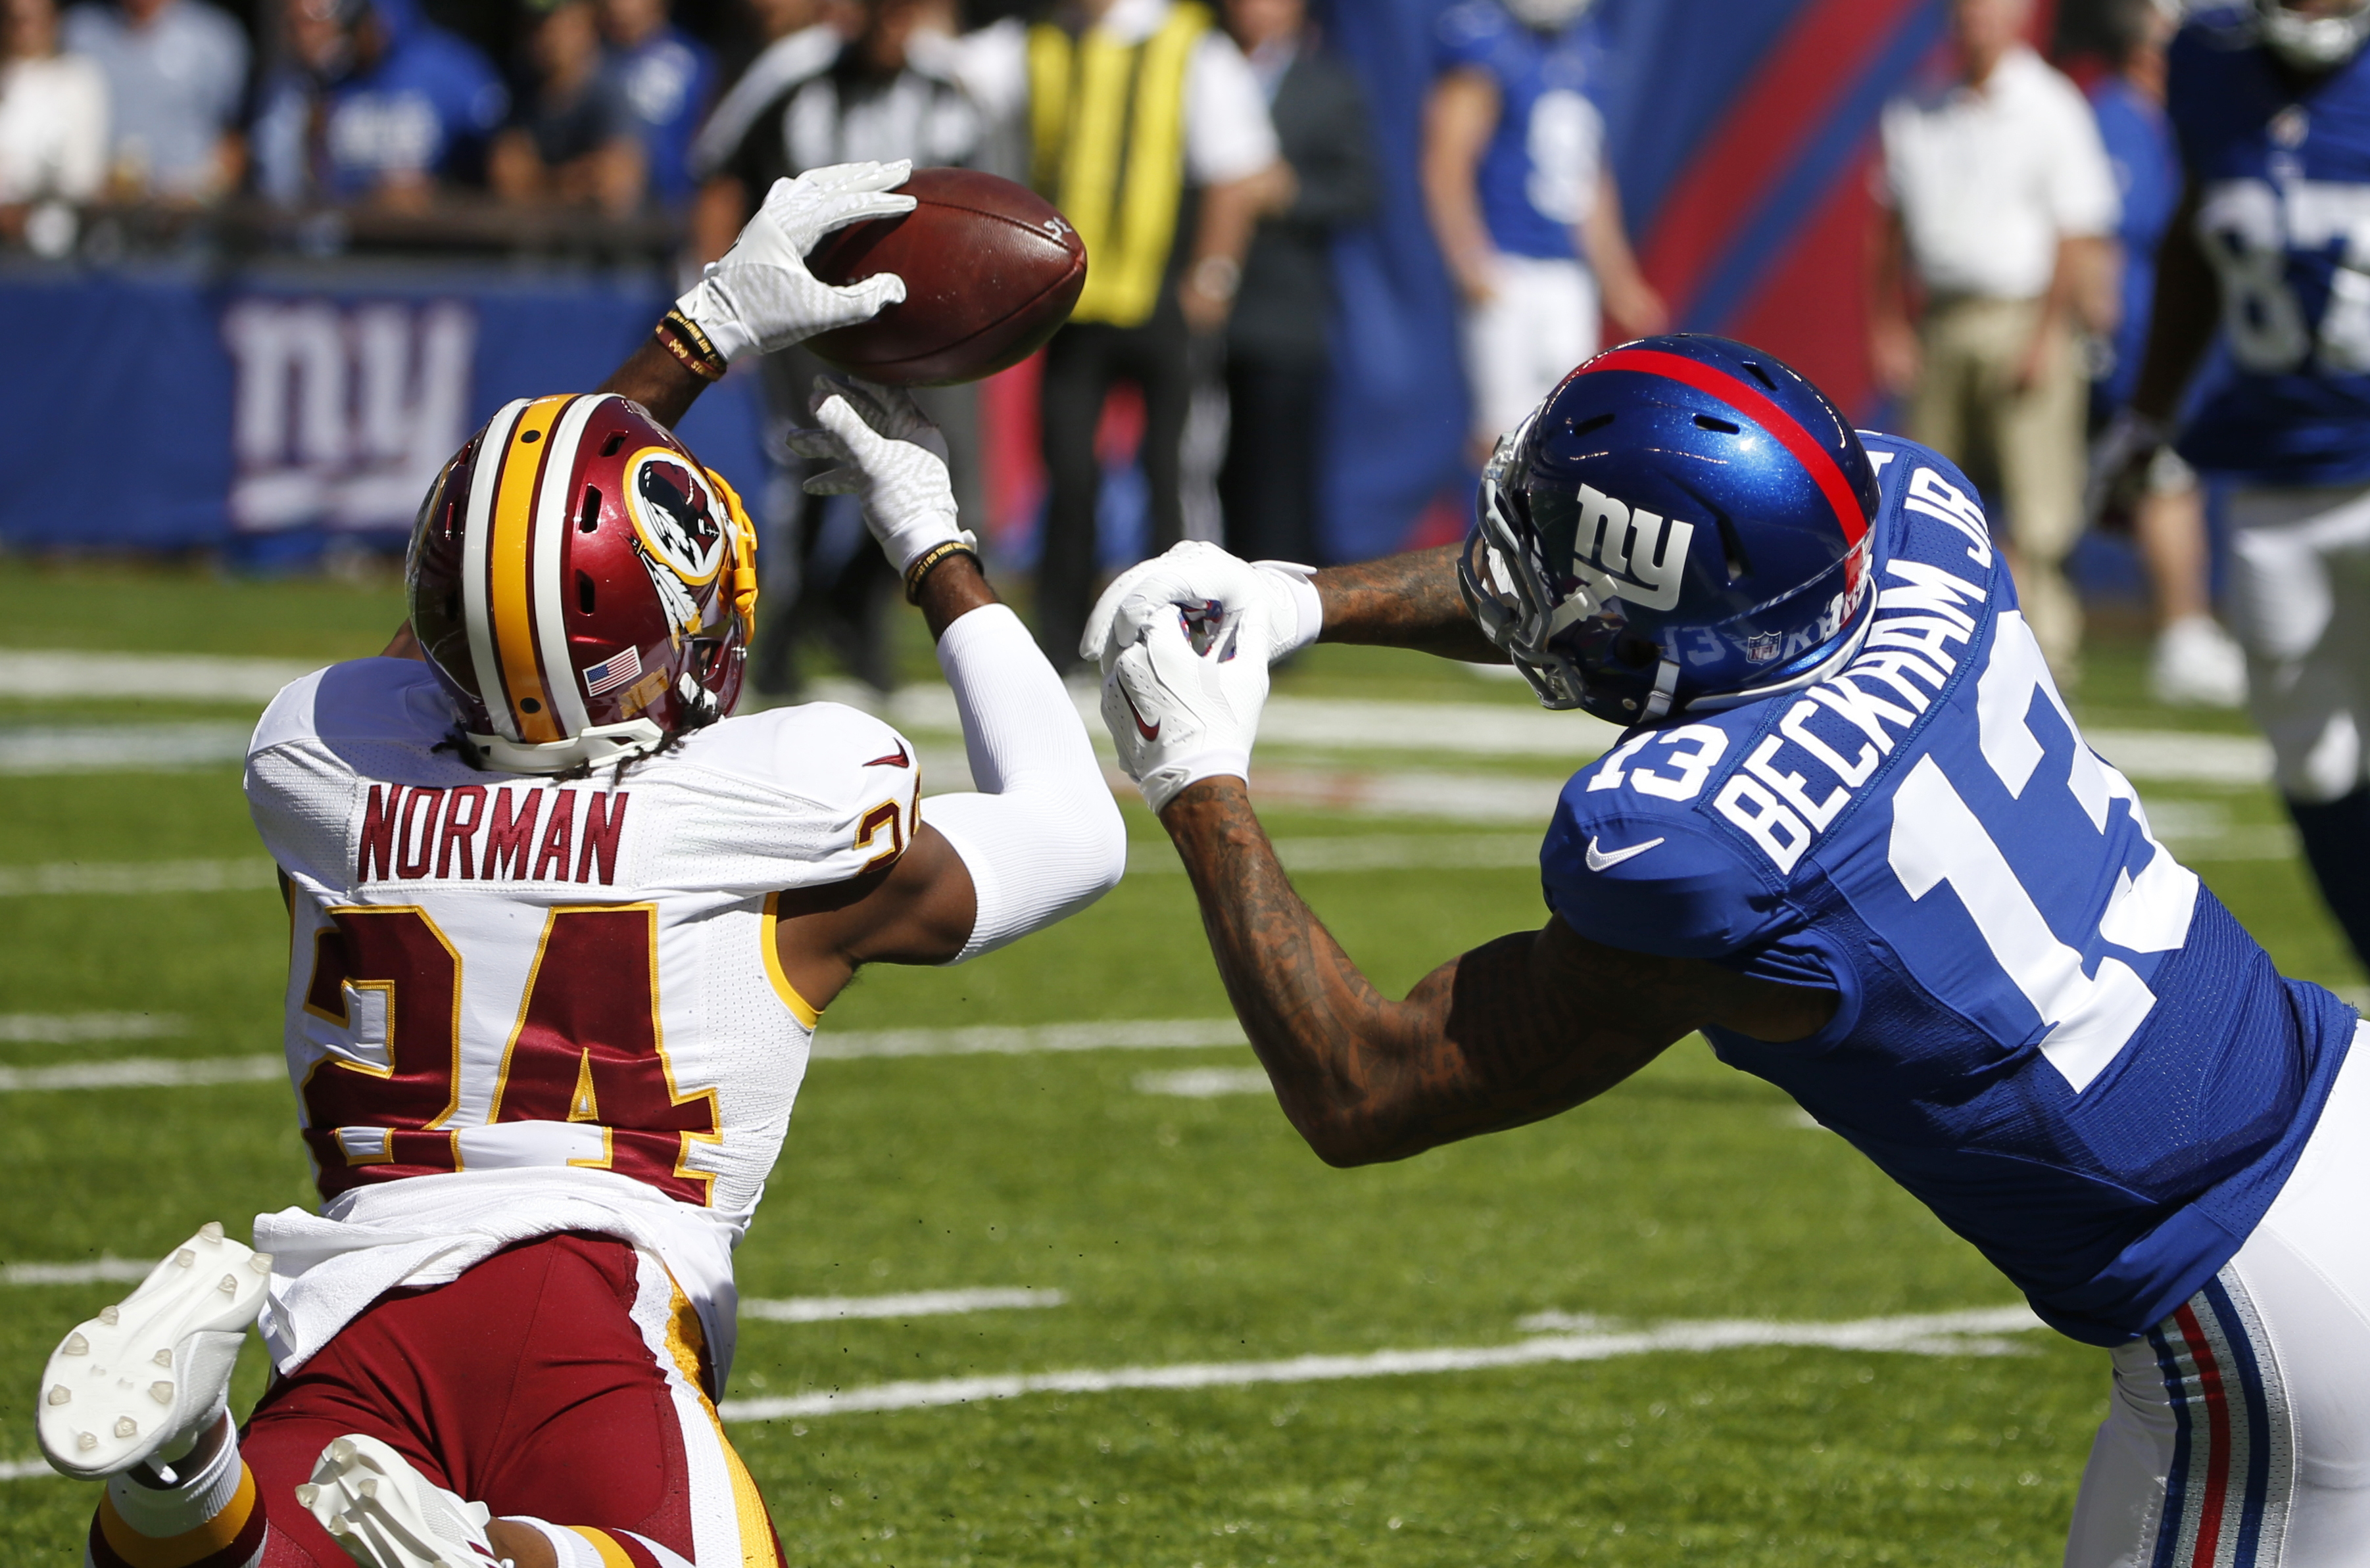 FILE - In this Sept. 25, 2016, file photo, Washington Redskins cornerback Josh Norman (24) fights for control of the ball with New York Giants' Odell Beckham Jr. (13) during the first half of an NFL football game in East Rutherford, N.J. In the final Sund